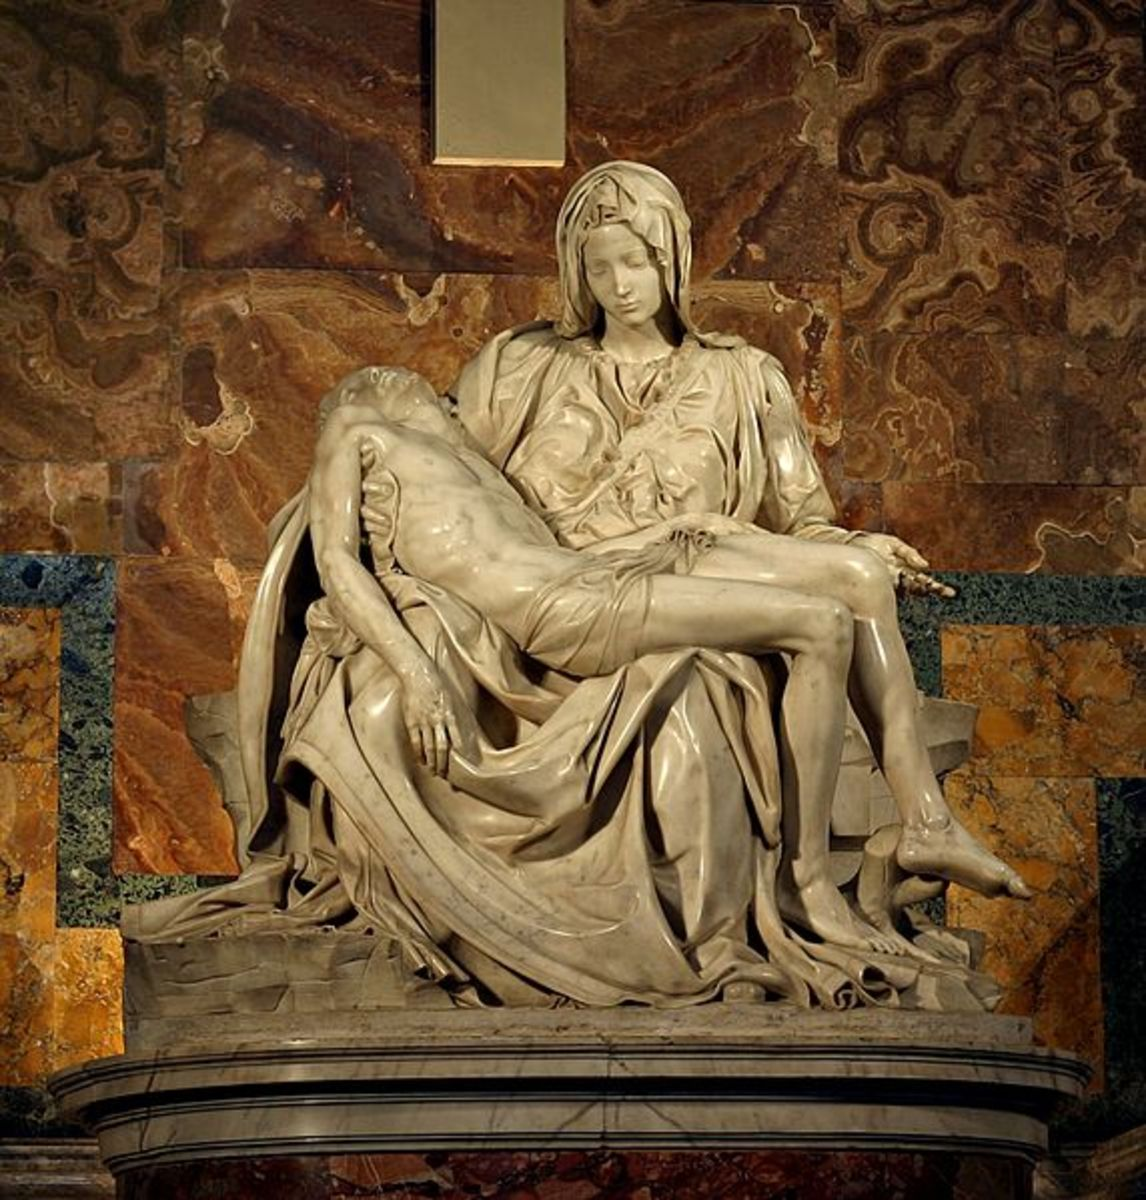 The Pieta, St. Peter's Basilica, Vatican City, 1499.